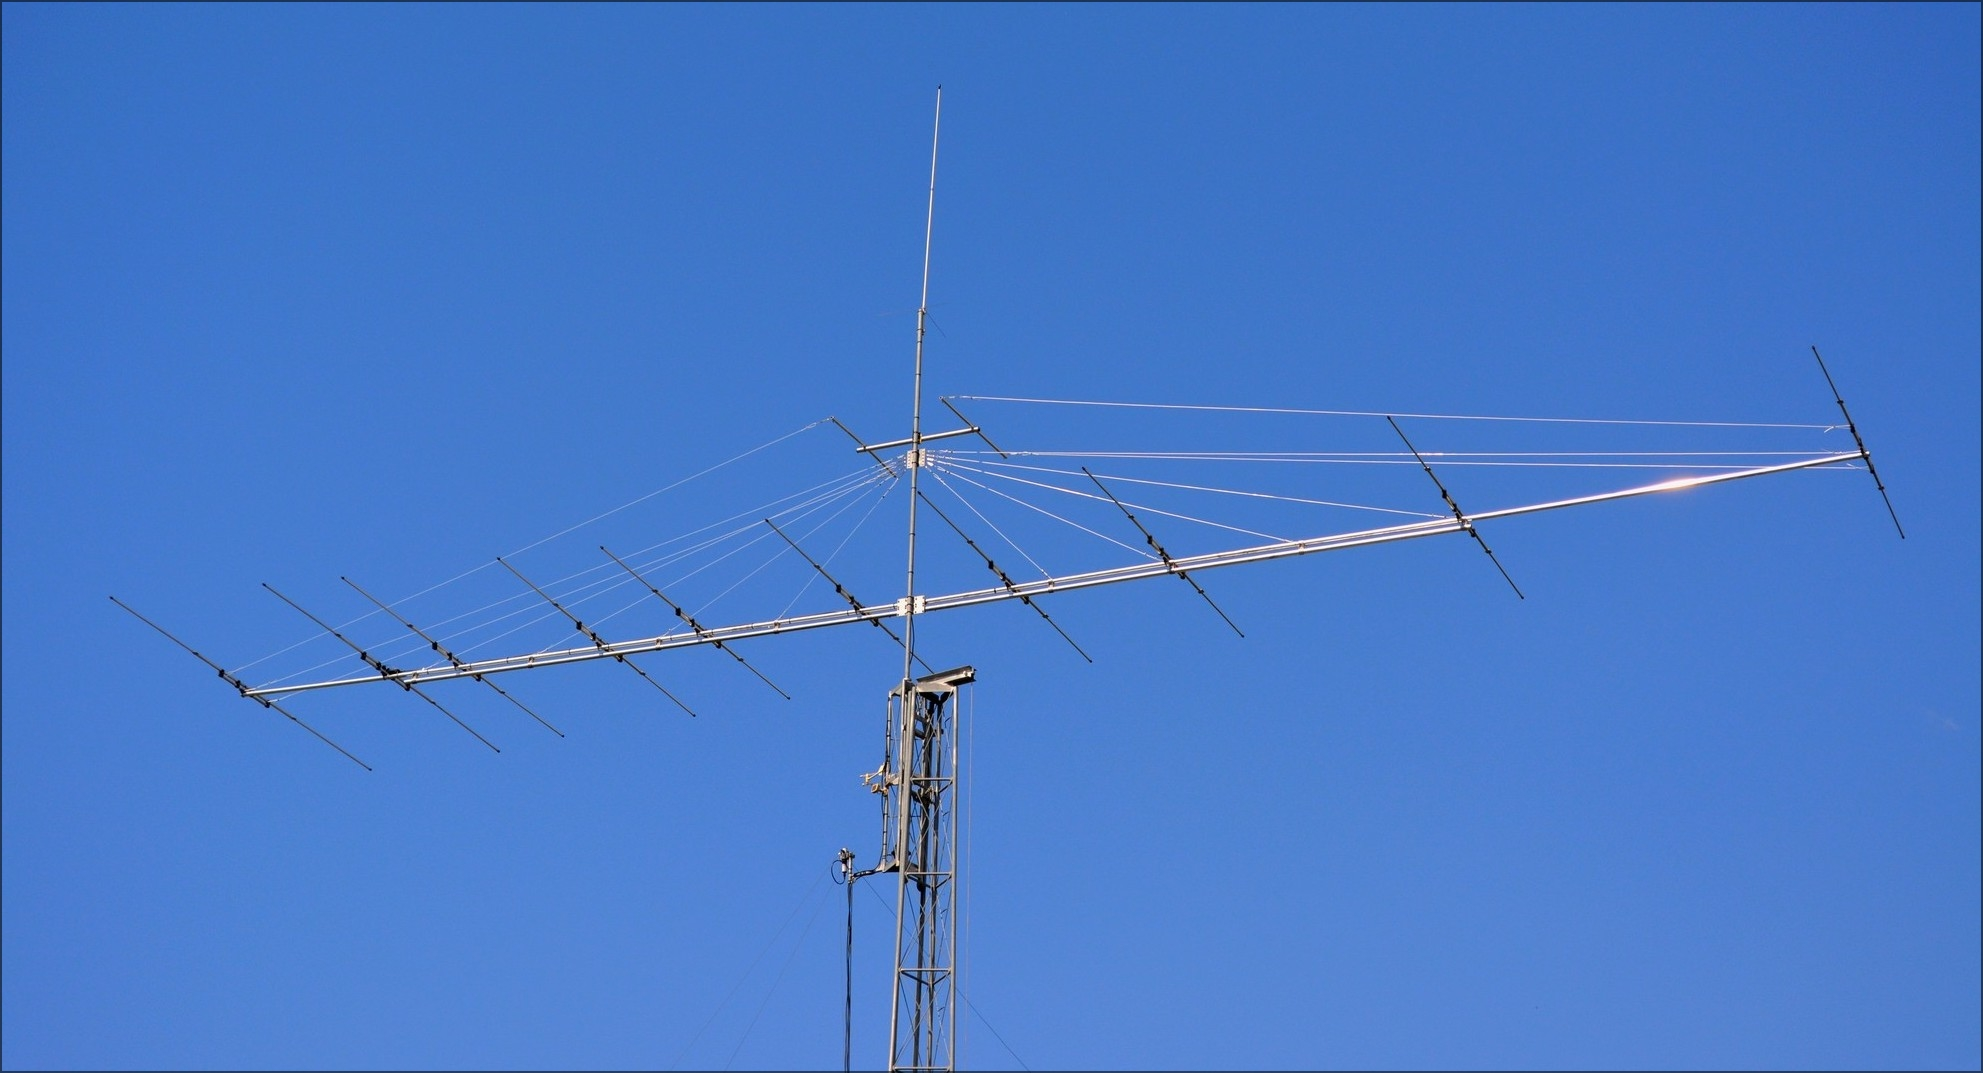 This antenna is a prototype, conception is not marketed. Optimisation and design home made